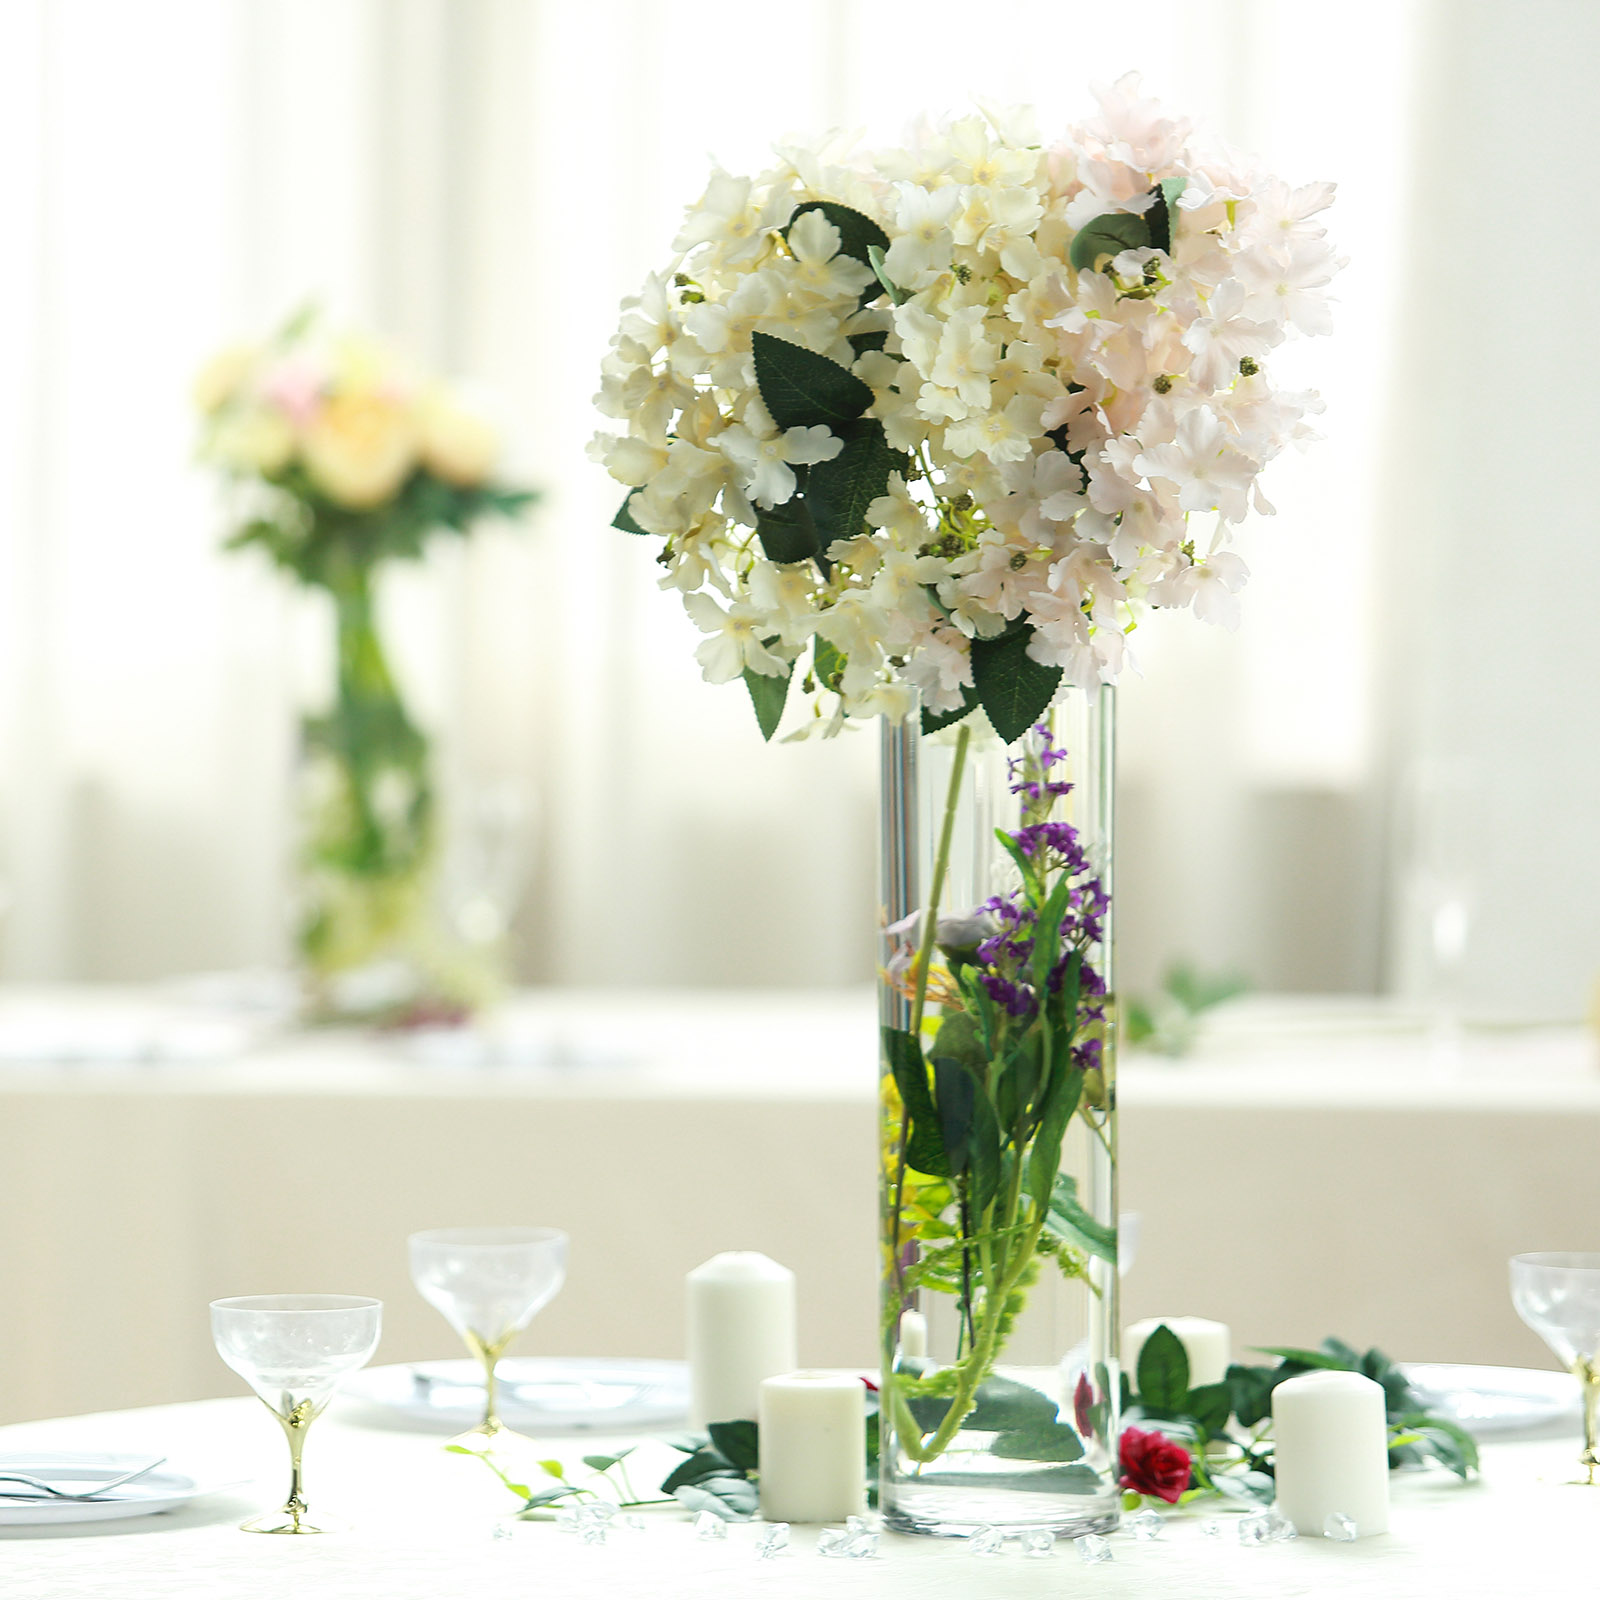 Events Or Home Decor Flowers Floral Supply Online 5 Tall X 5 Wide Cylinder Glass Vase For Weddings Office Arrangements Decorating Vases